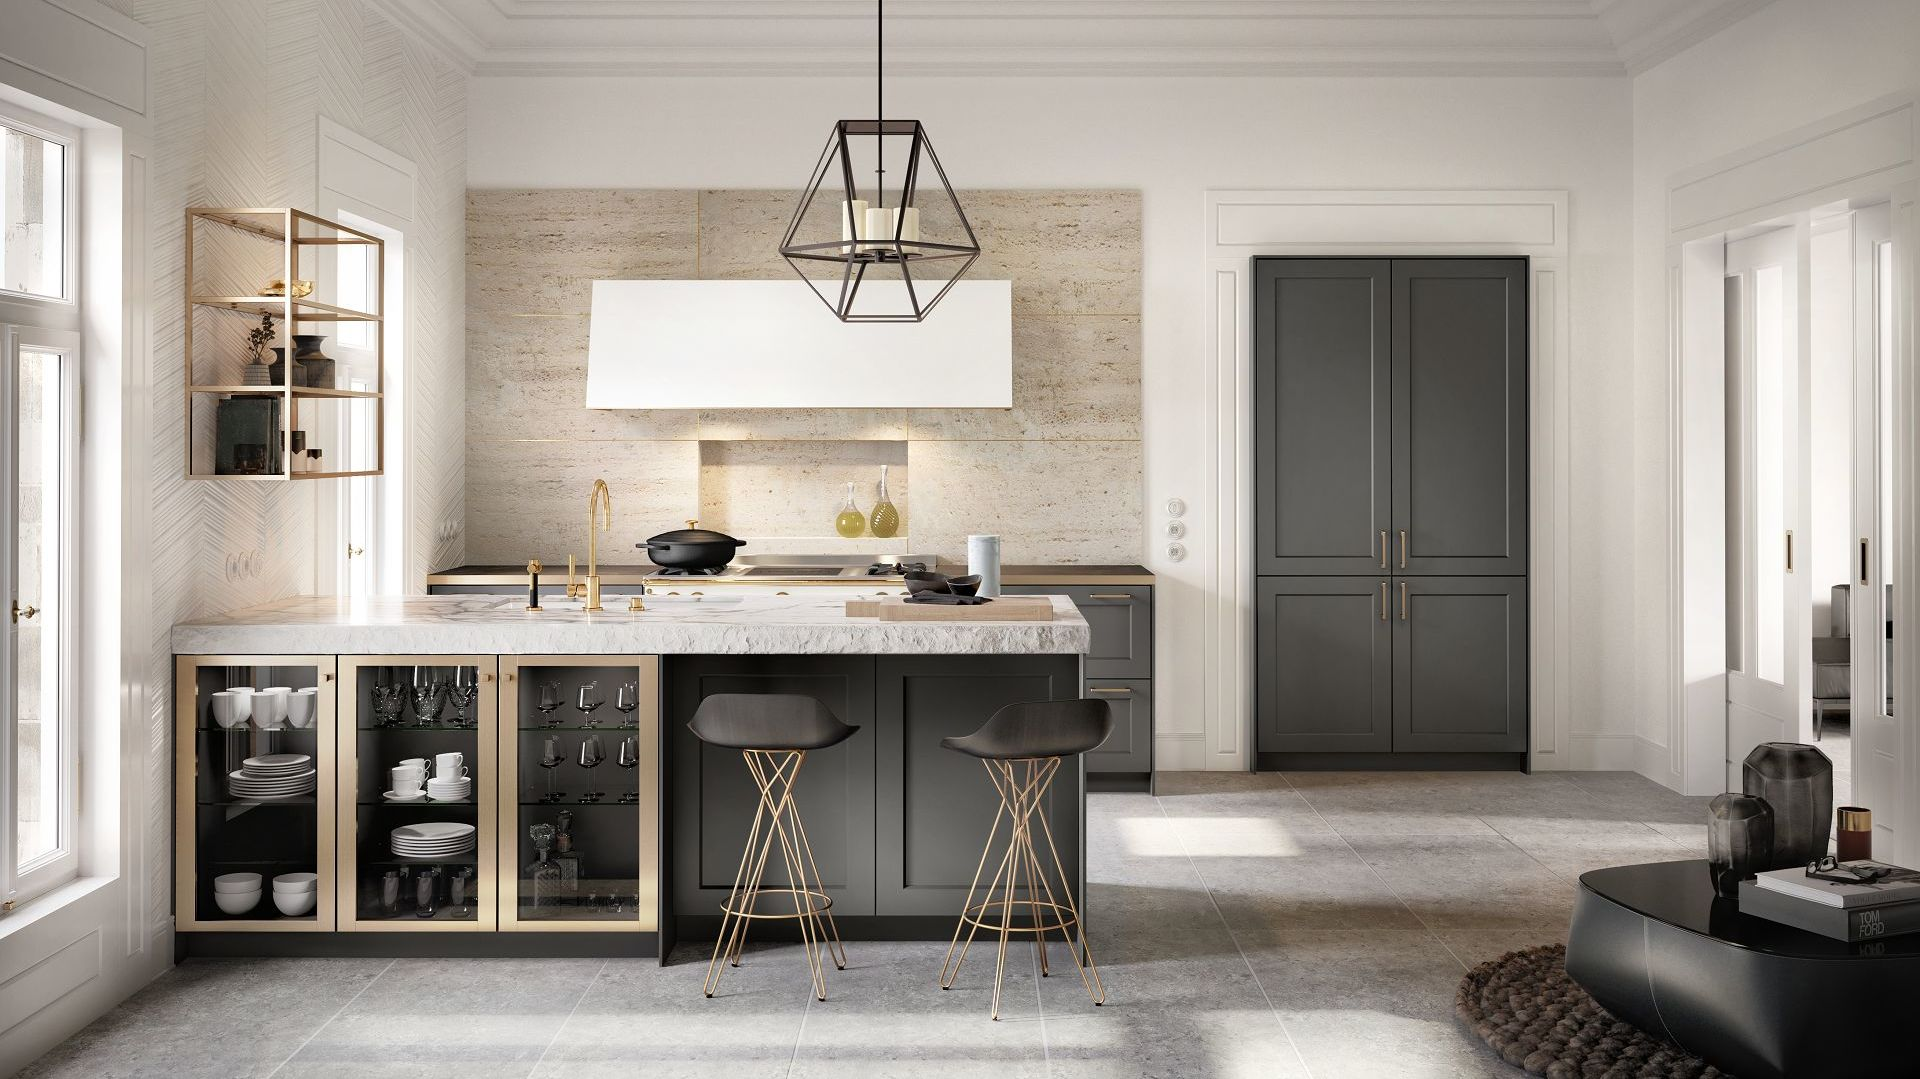 We design your own dream kitchen - SieMatic | SieMatic